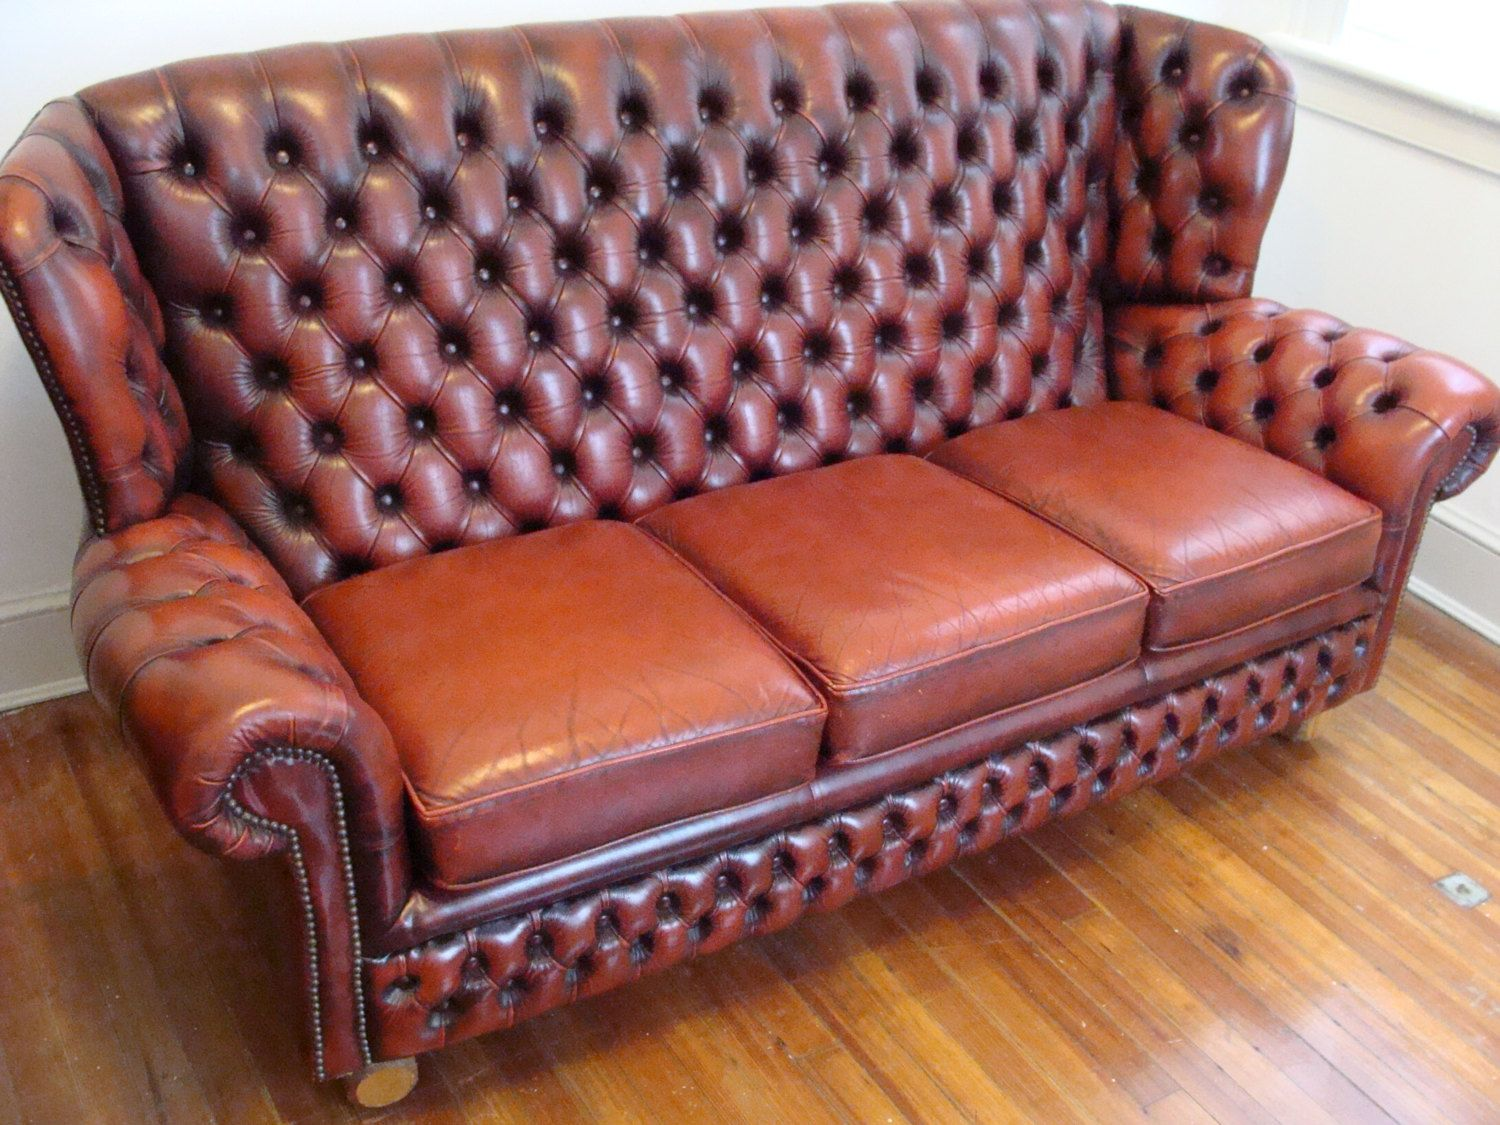 gorgeous vintage english monks sofa tufted high wing back british 3 seater couch 6ft